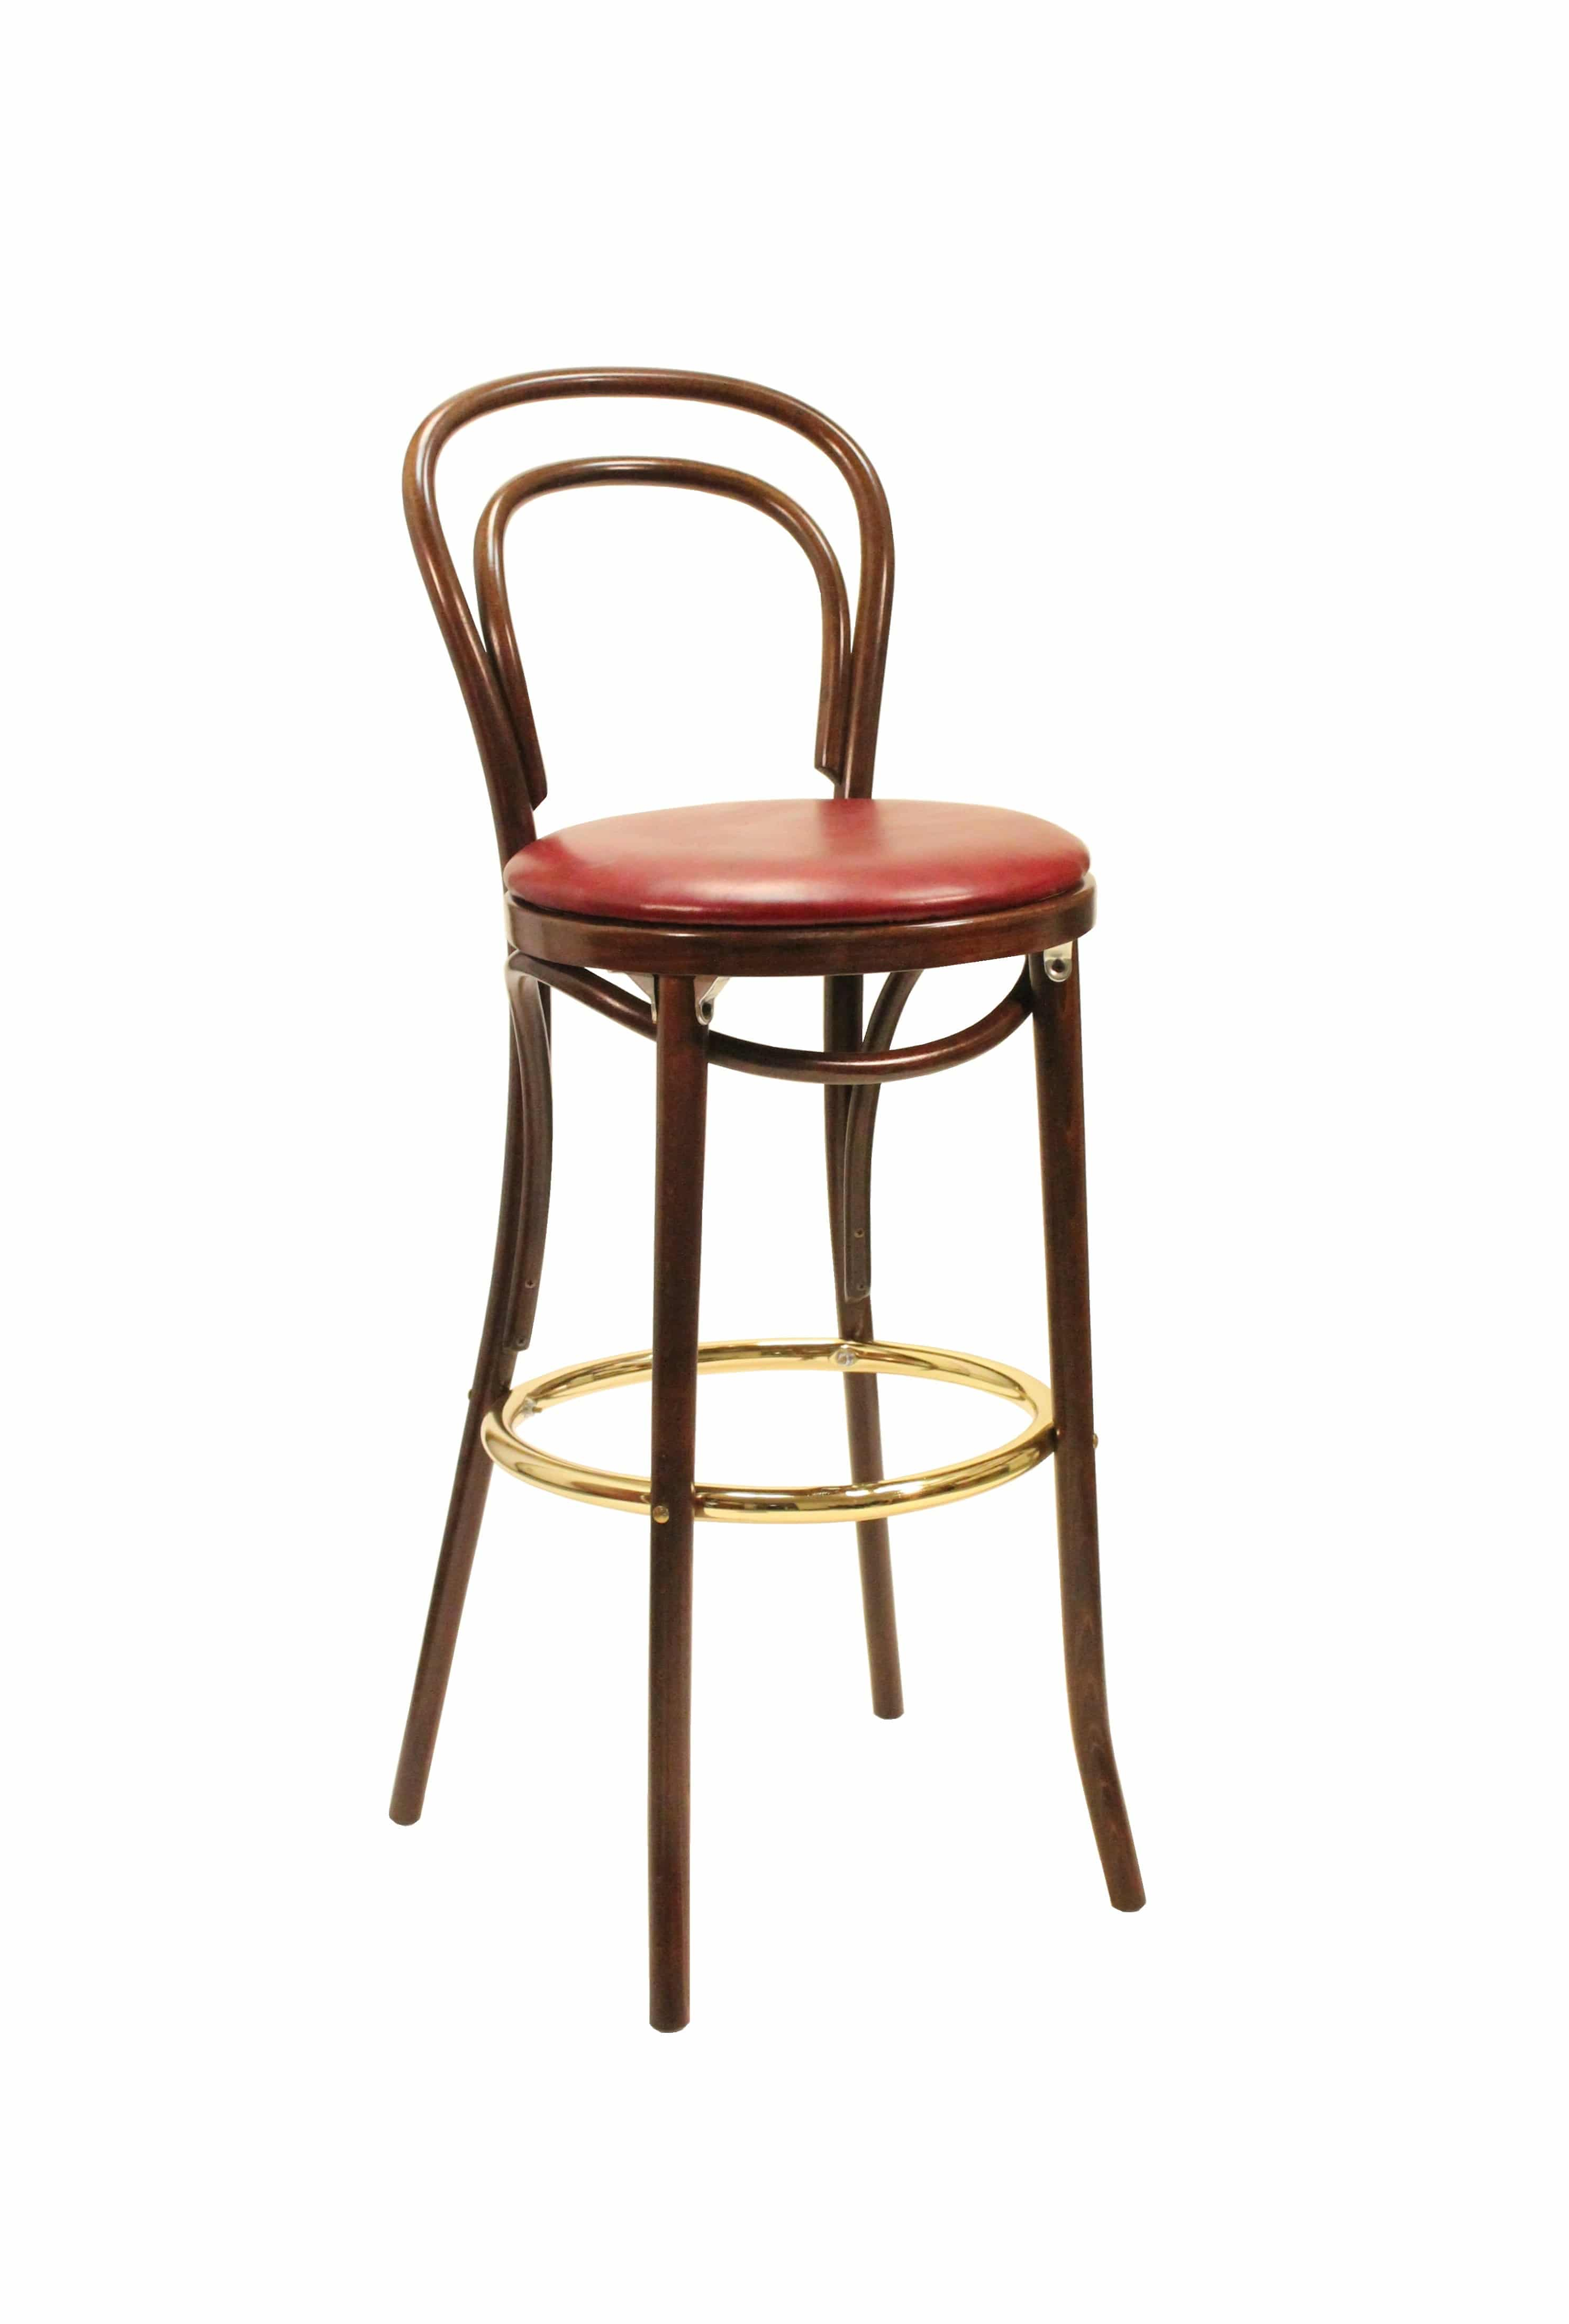 Traditional Bentwood Bow Back Stool – Model 314 – Restaurant